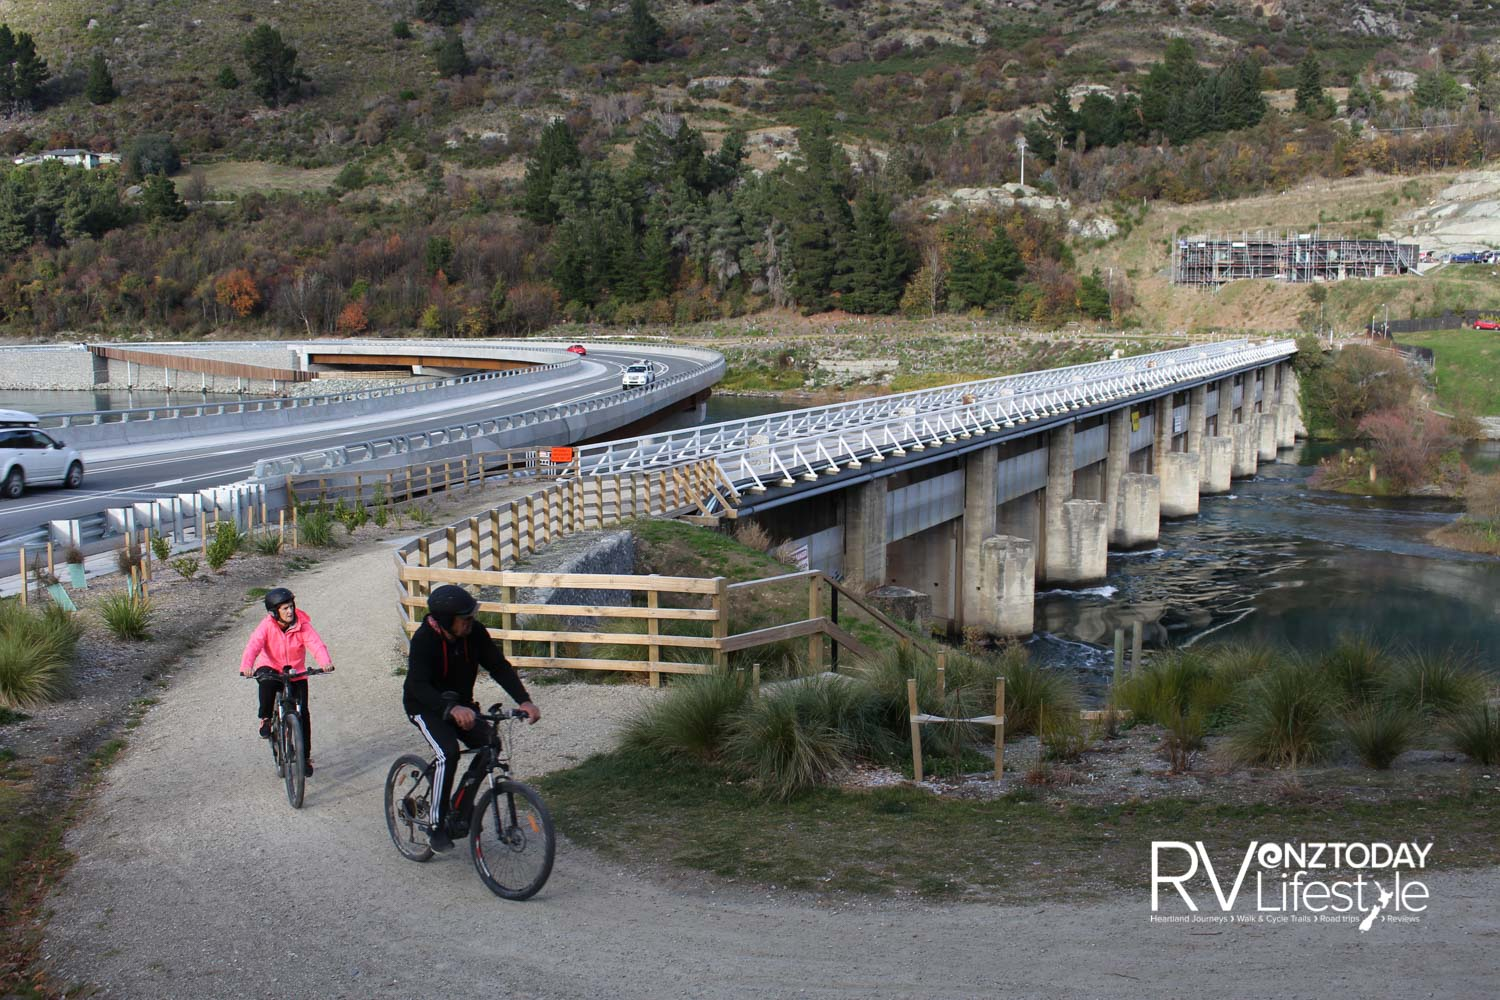 The new bridge across the outlet of Lake Wakatipu has ended years of traffic jams, while the old bridge – which was also part dam – has been retained for walkers and cyclists